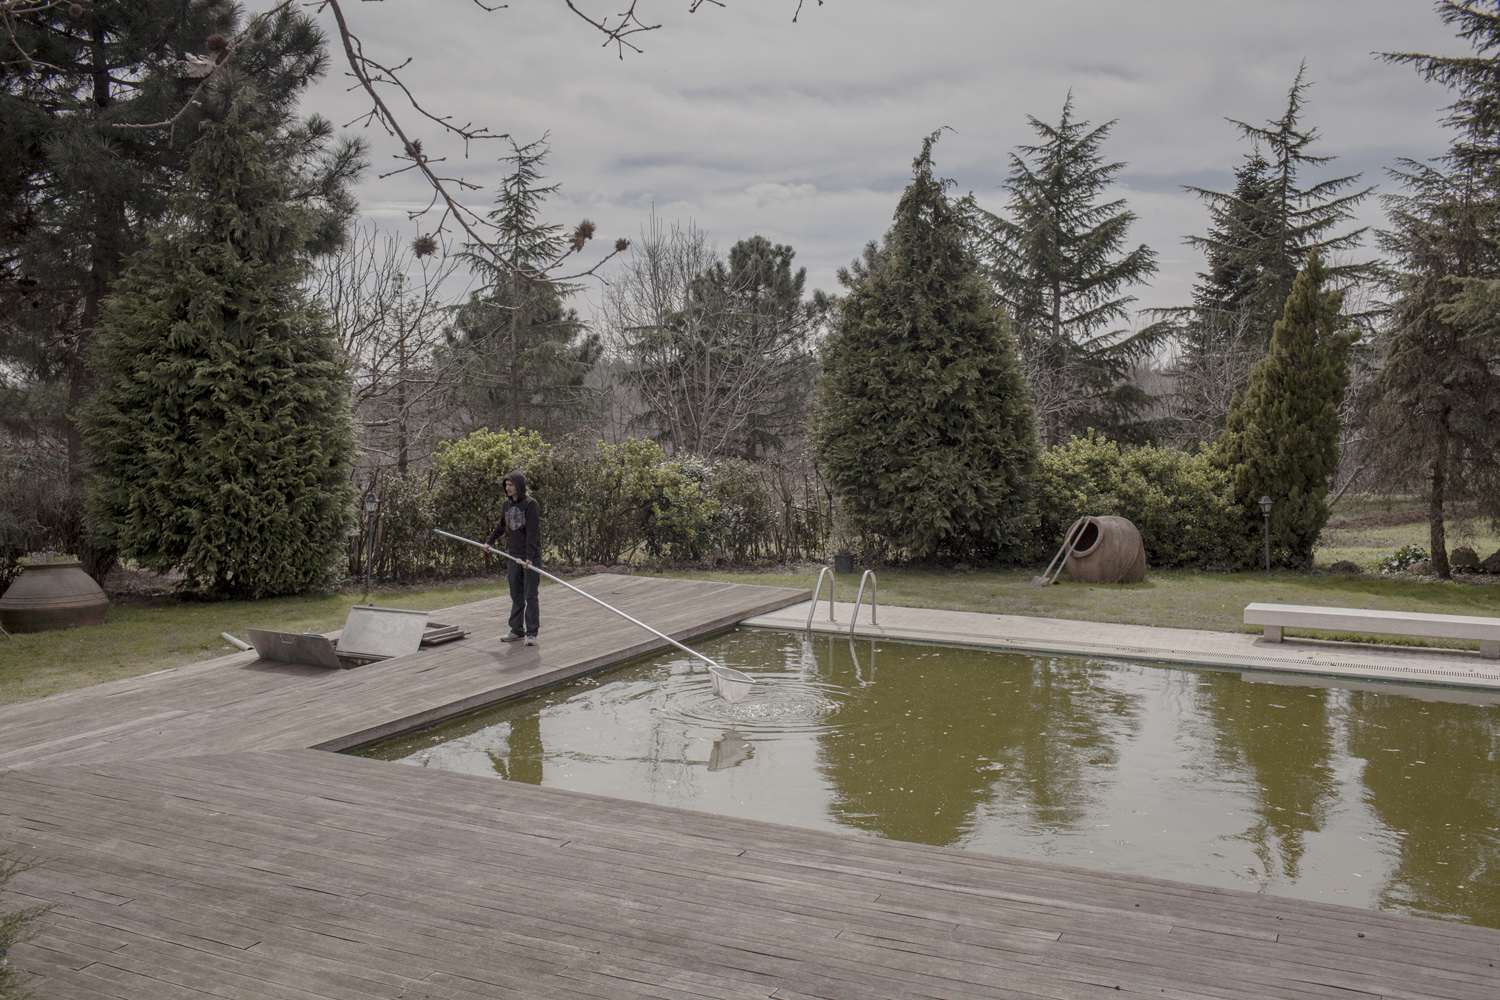 The swimming pool of a wealthy resident of Istanbul is cleaned for filming, March 2013.